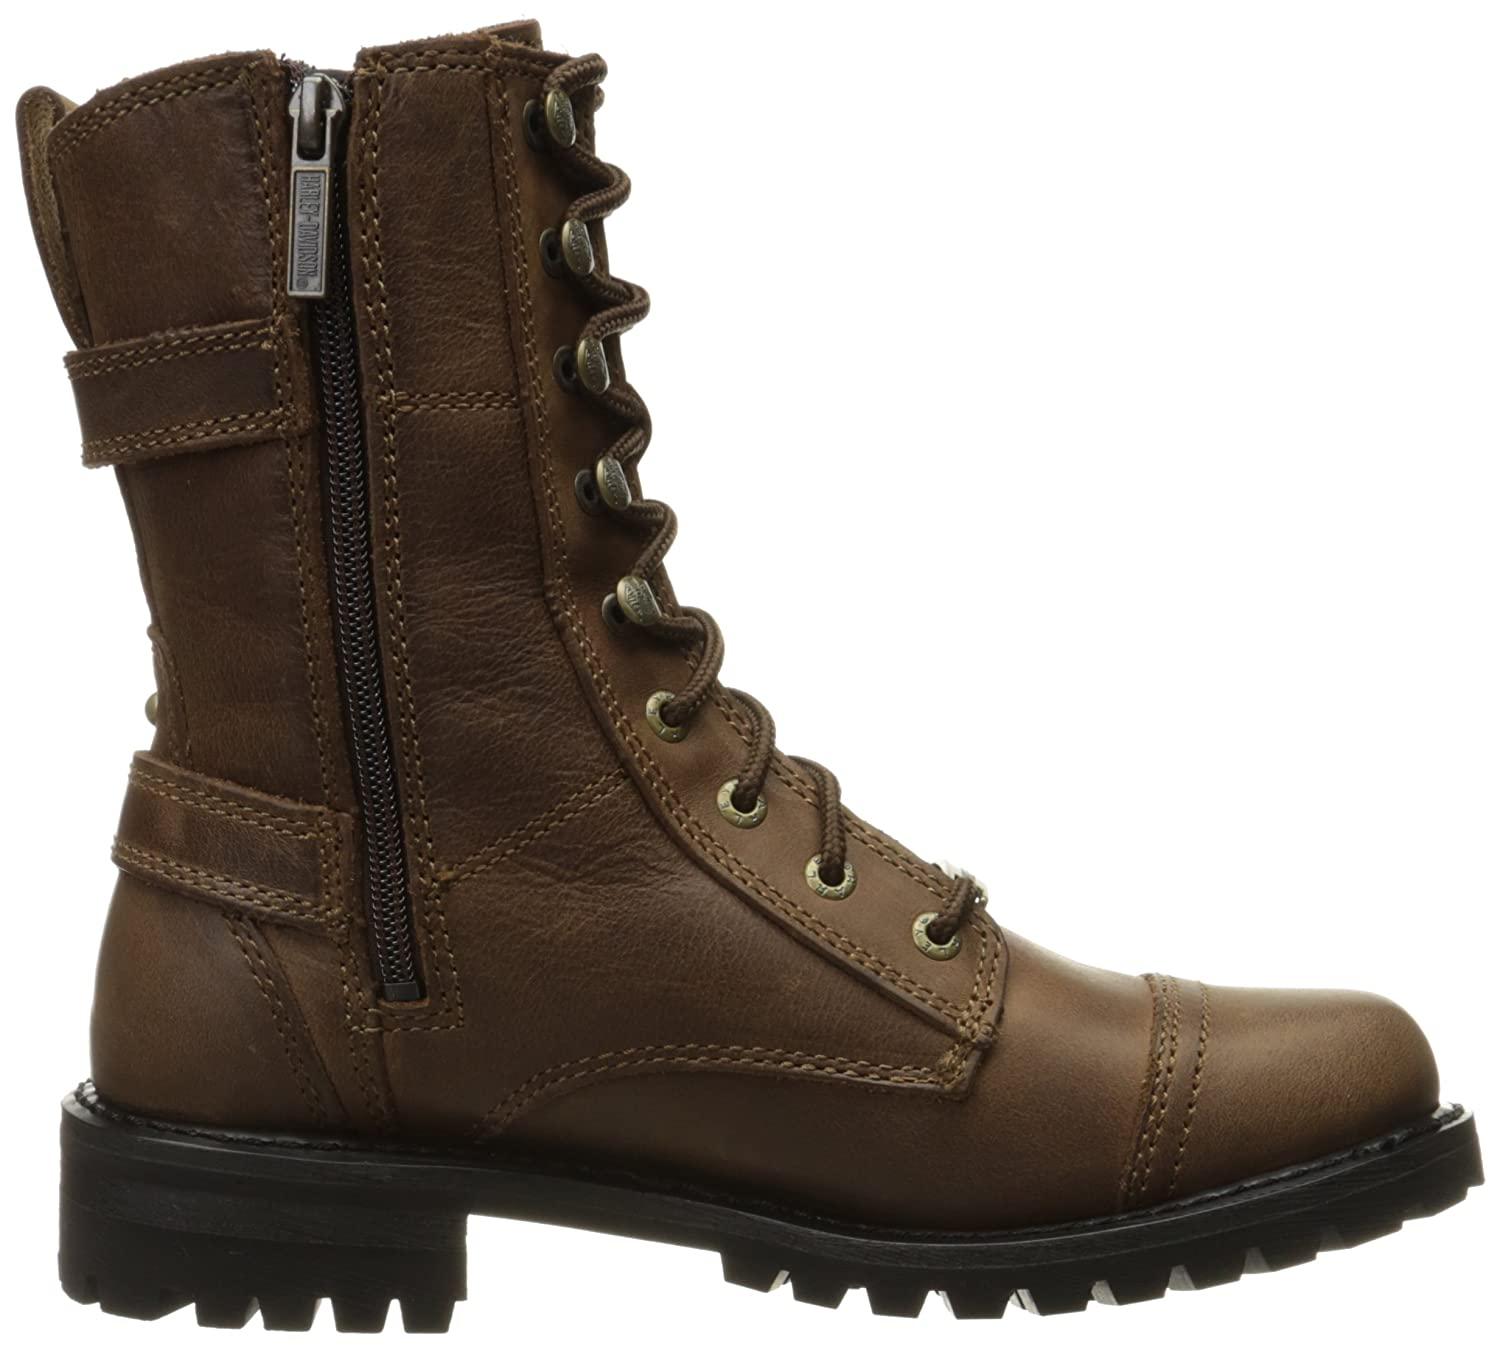 Harley-Davidson Women's Balsa Work US|Brown Boot B005BFRWWS 5 B(M) US|Brown Work ead4d5